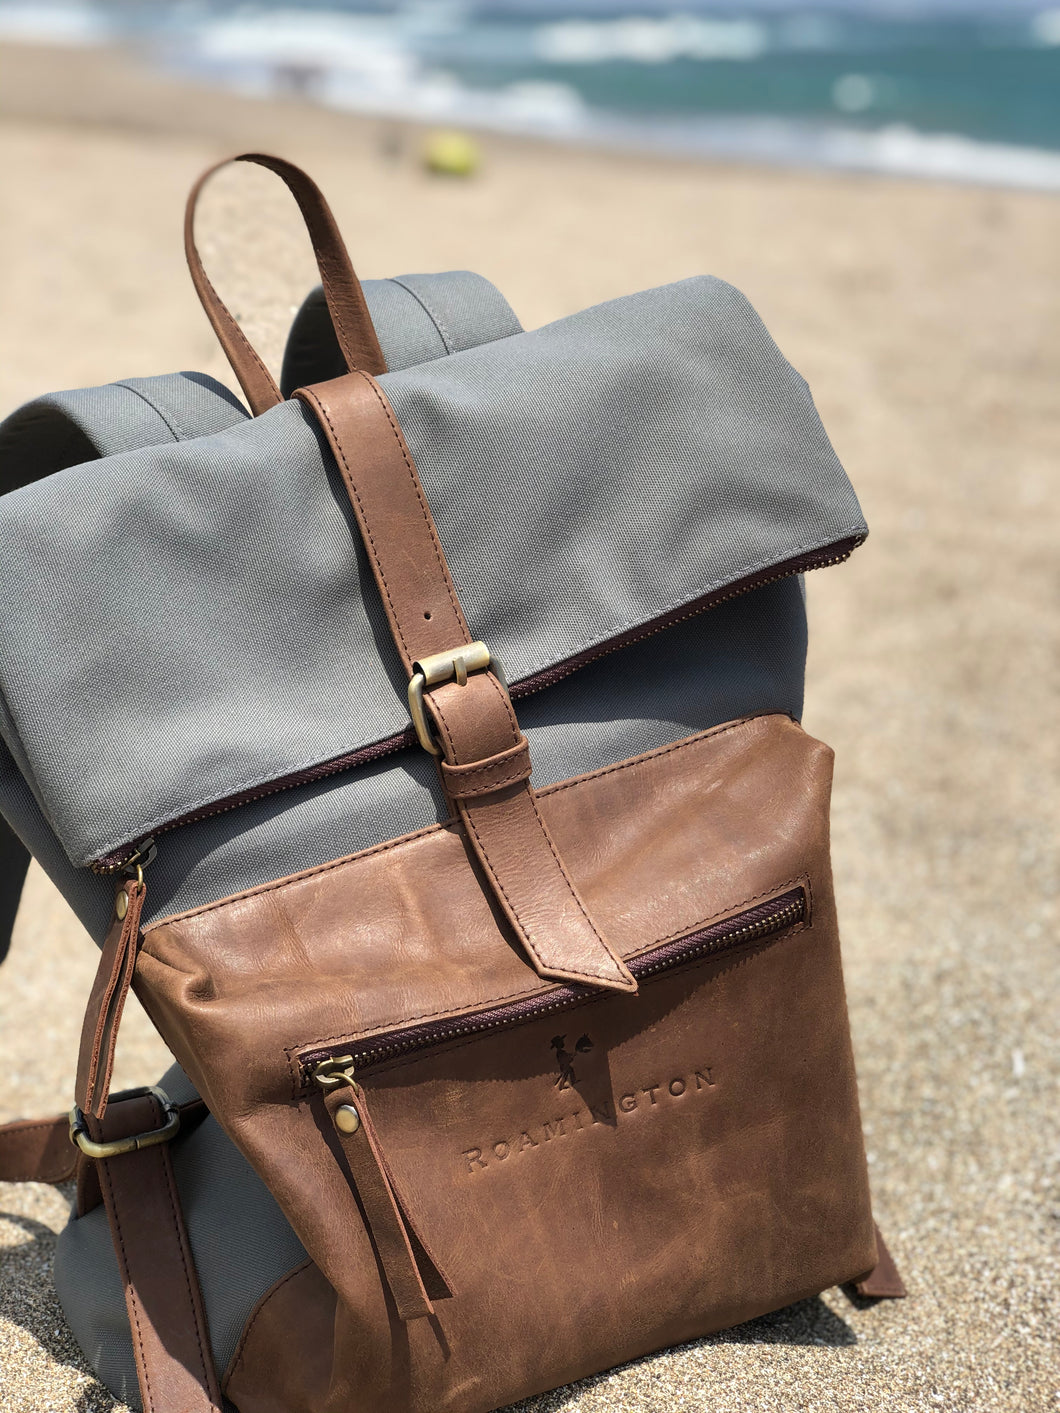 The Huntsman Backpack